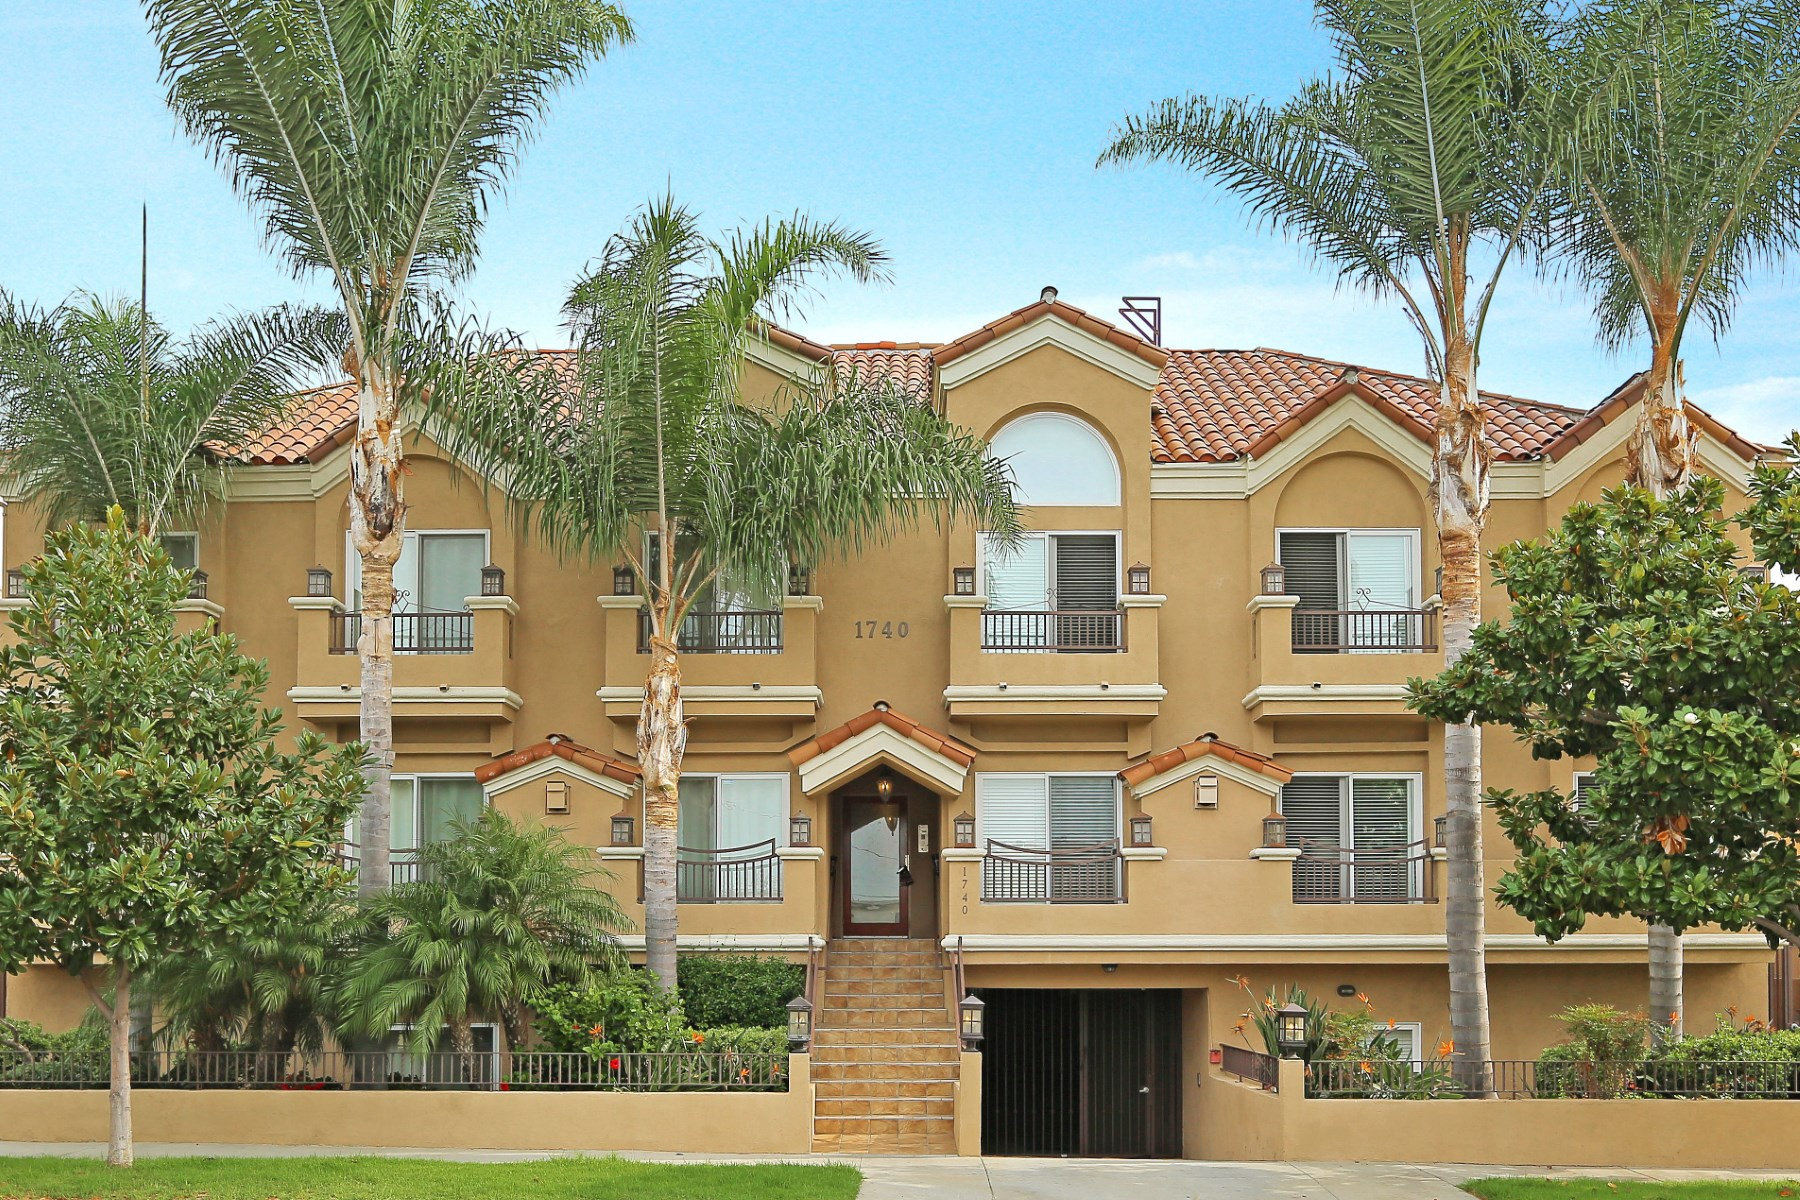 Villetta a schiera per Vendita alle ore Stylish Westside Townhouse 1740 S. Westgate Ave #D West Los Angeles, Los Angeles, California 90025 Stati Uniti